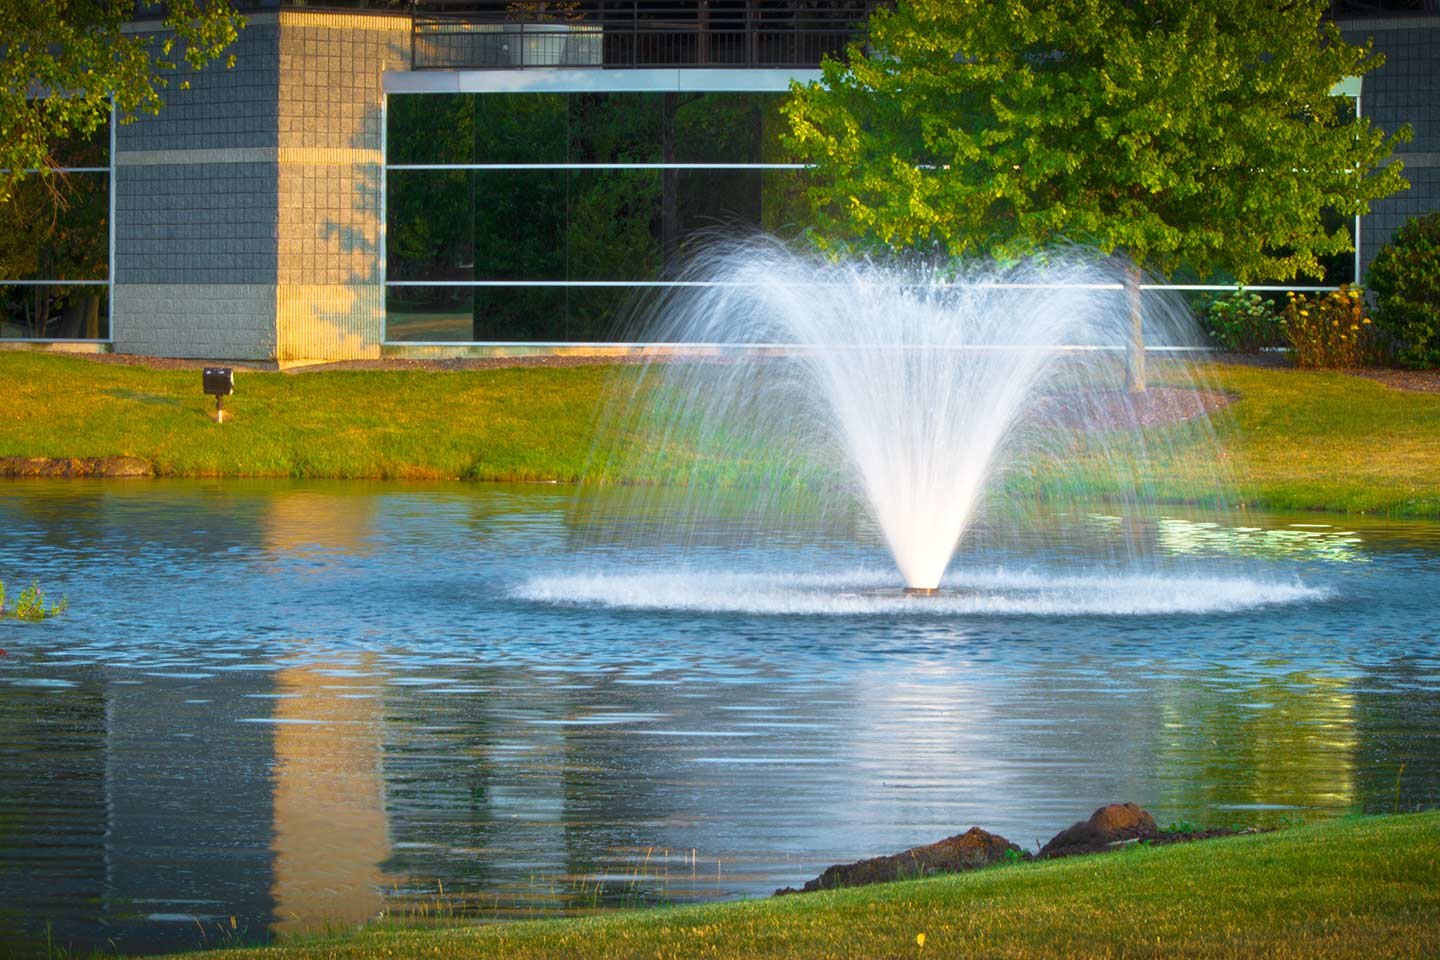 Outdoor Water Fountains, Pond Water Features, Fountain Pumps, Kits And  Supplies From Scott Aerator | Scott Aerator